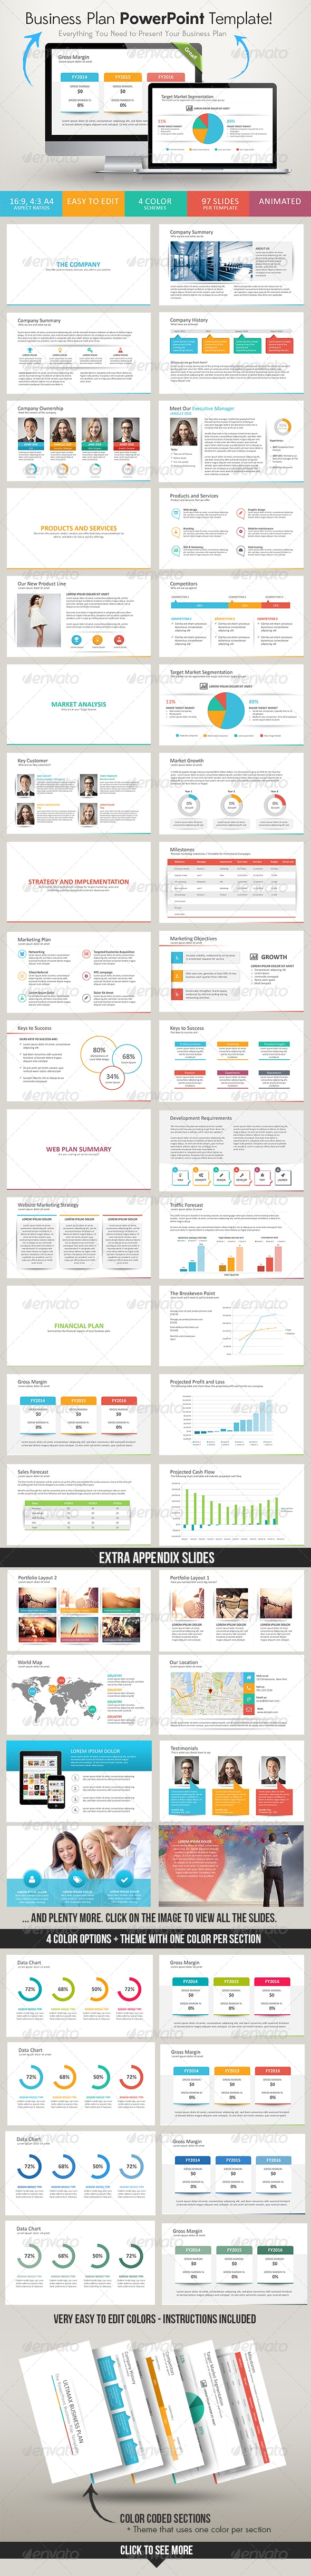 Ultimax Business Plan PowerPoint Template - Business PowerPoint Templates